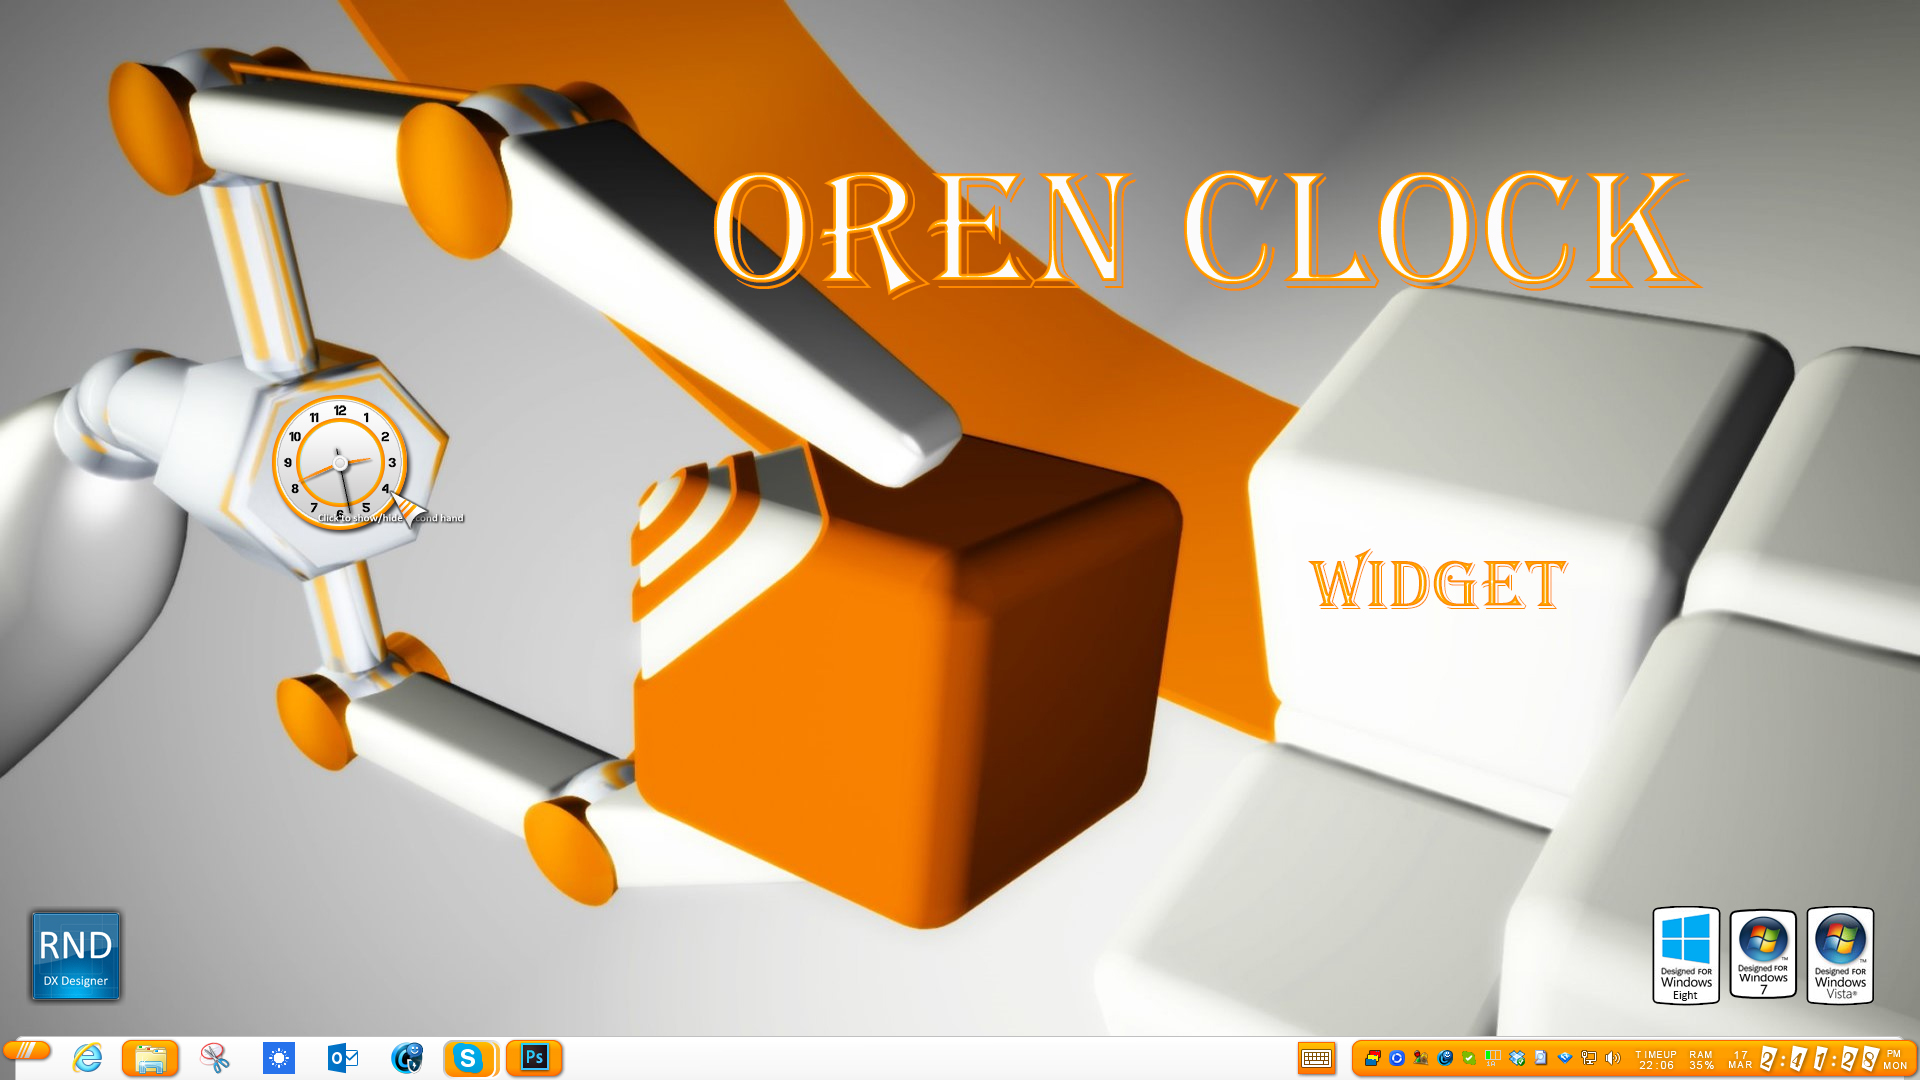 Oren Clock Widget